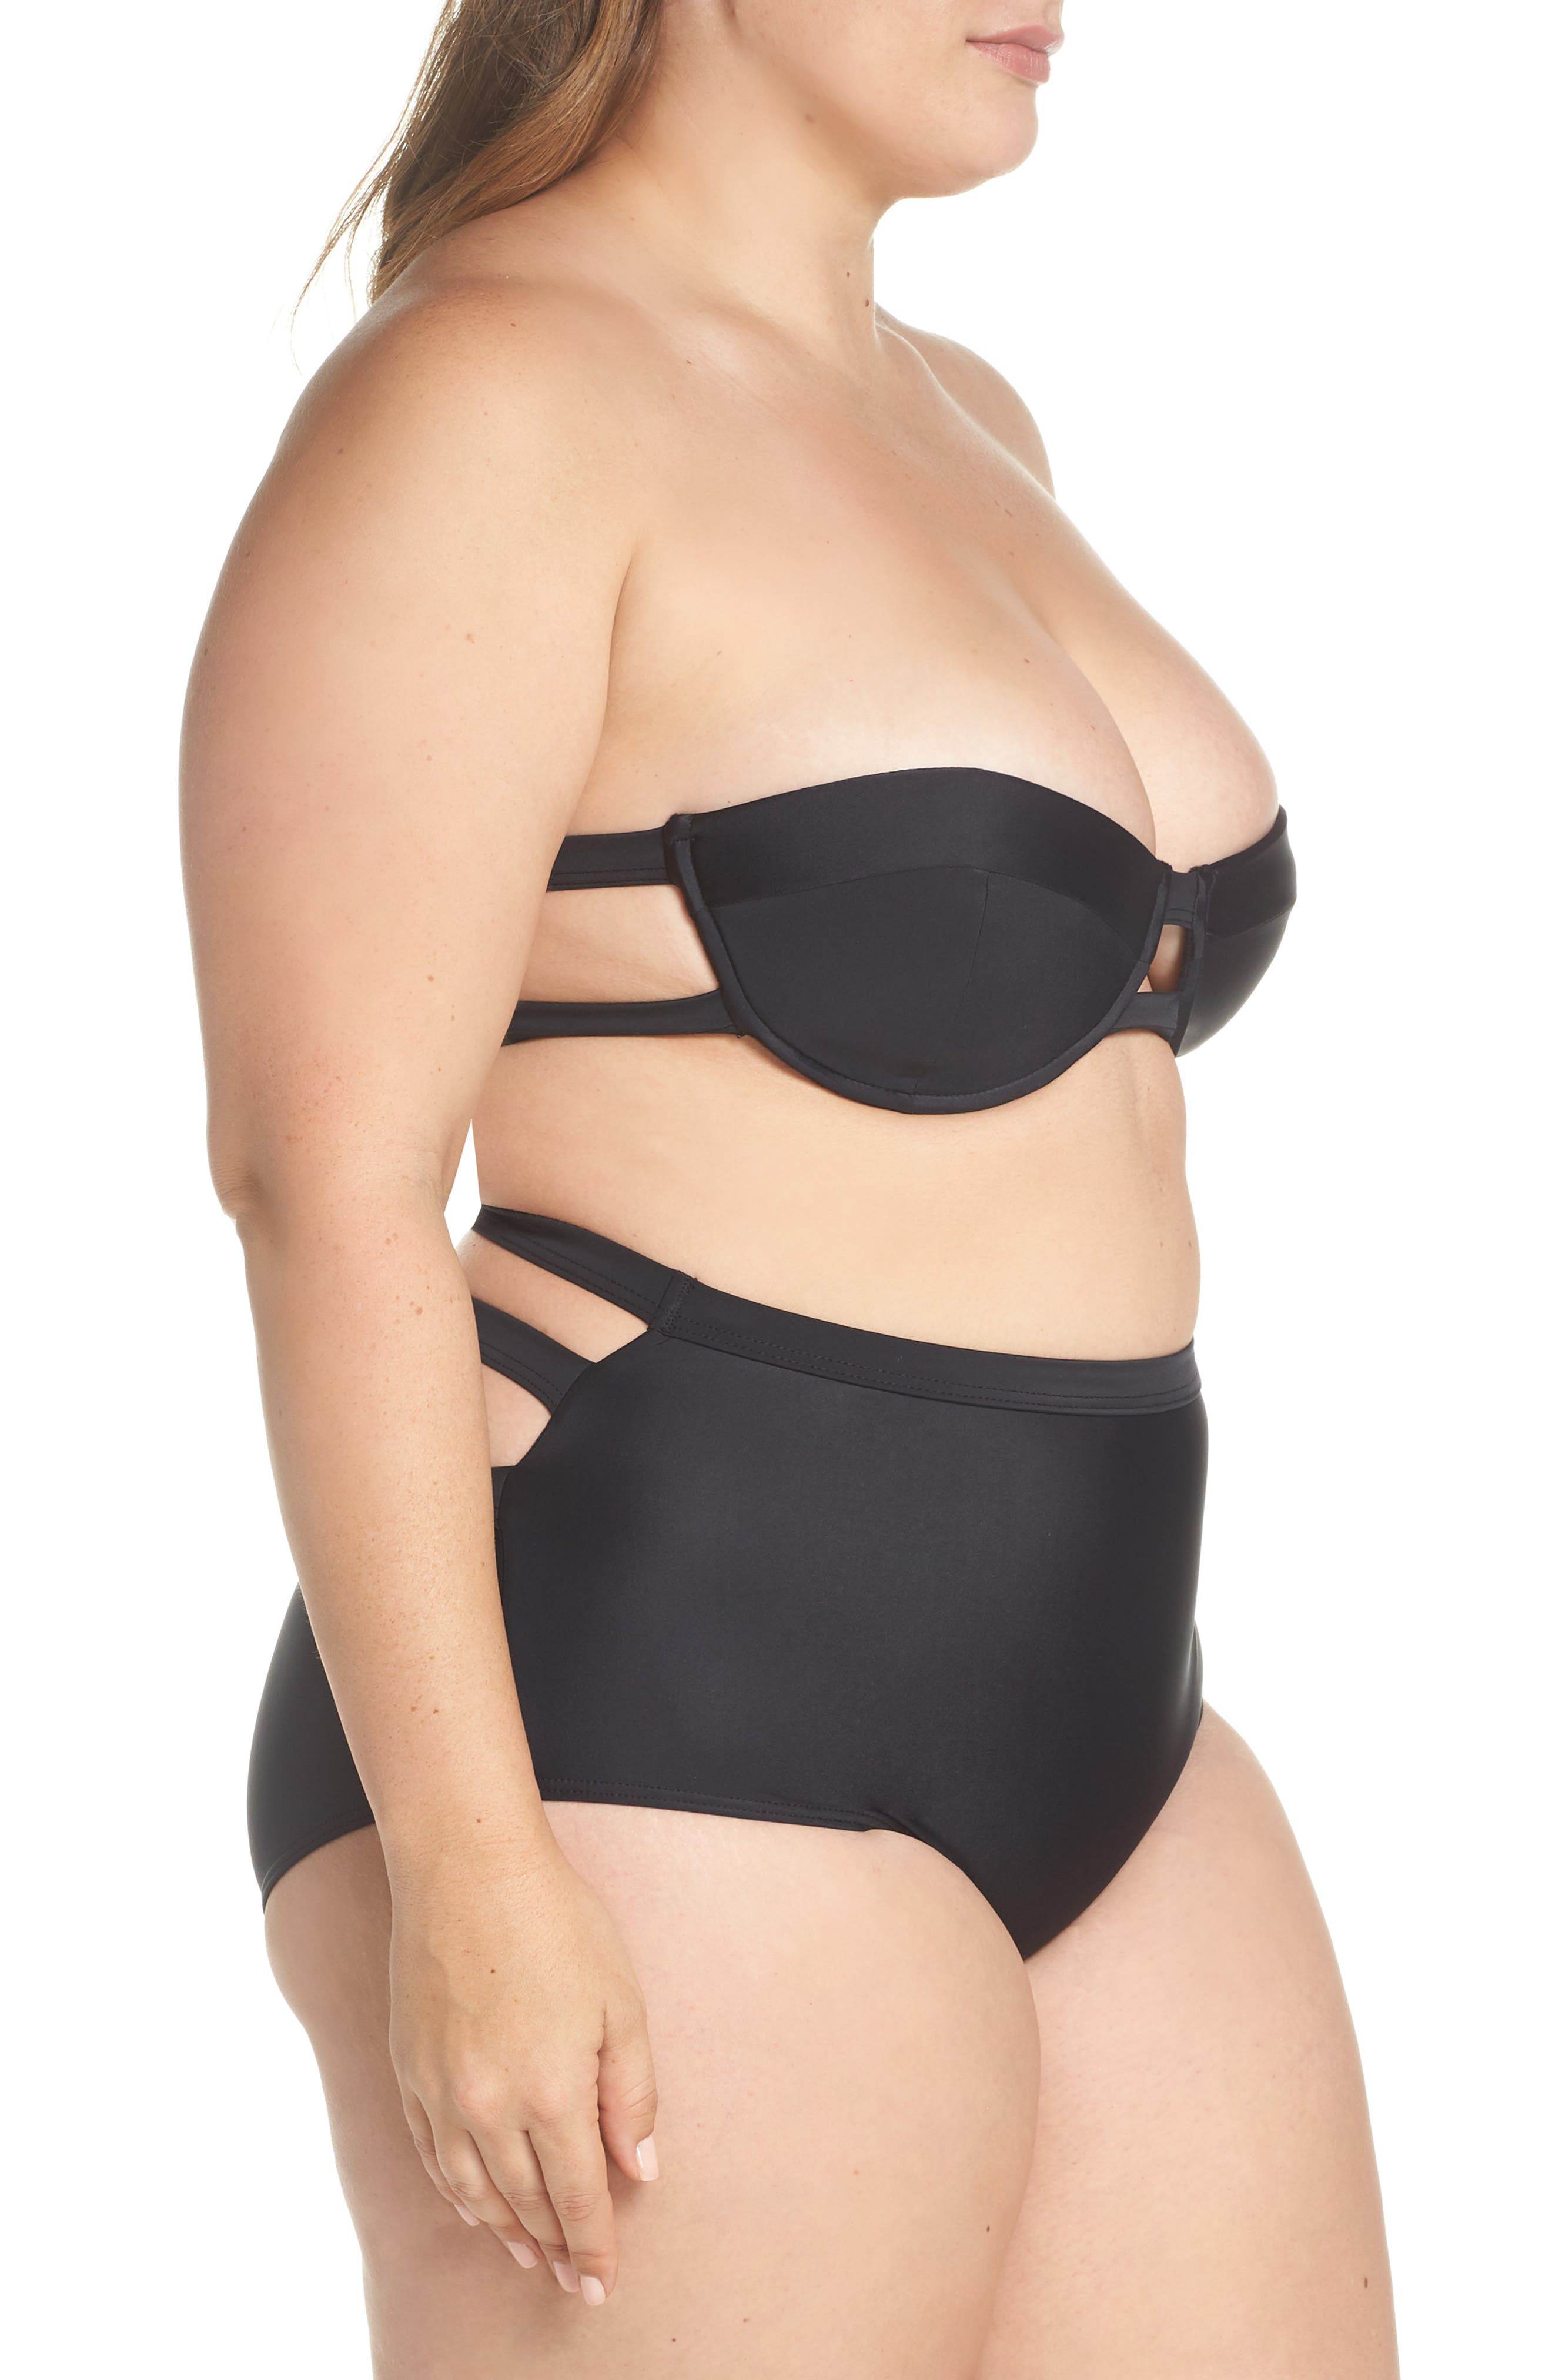 Bouloux II High Waist Bikini Bottoms,                             Alternate thumbnail 14, color,                             Black